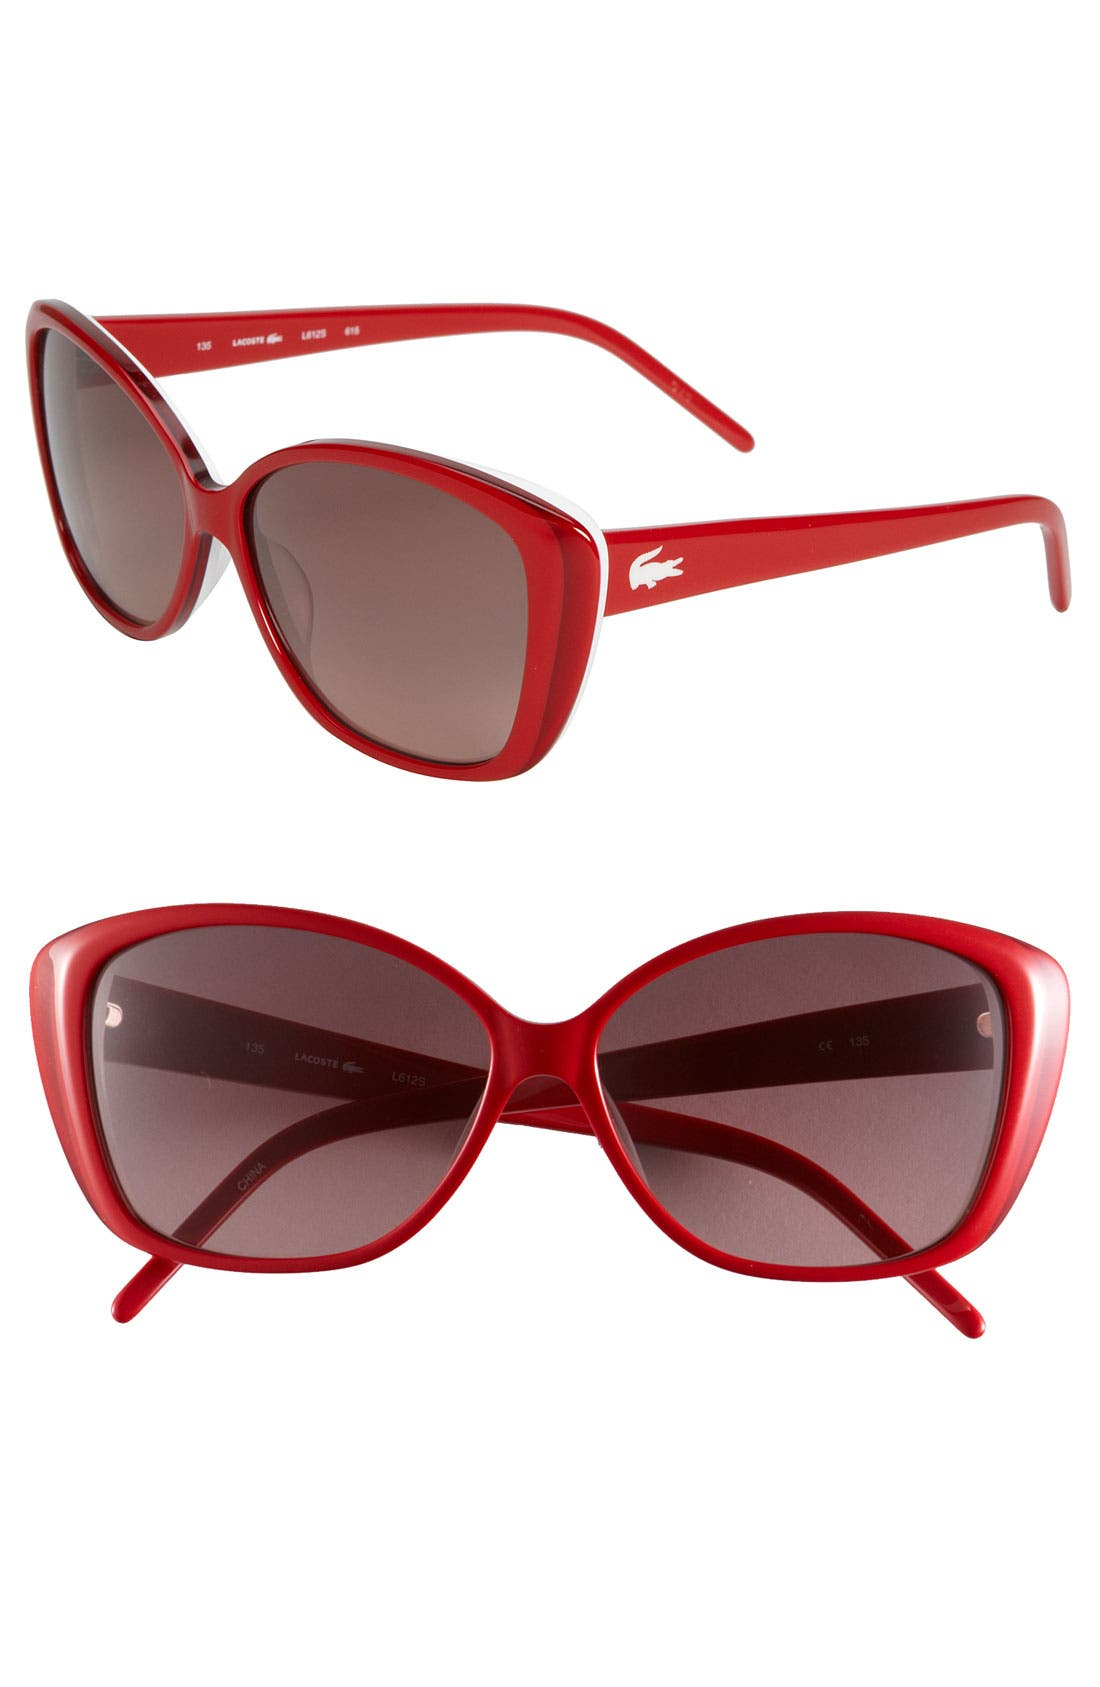 Main Image - Lacoste Eyewear Retro Stripe Cat's Eye Sunglasses